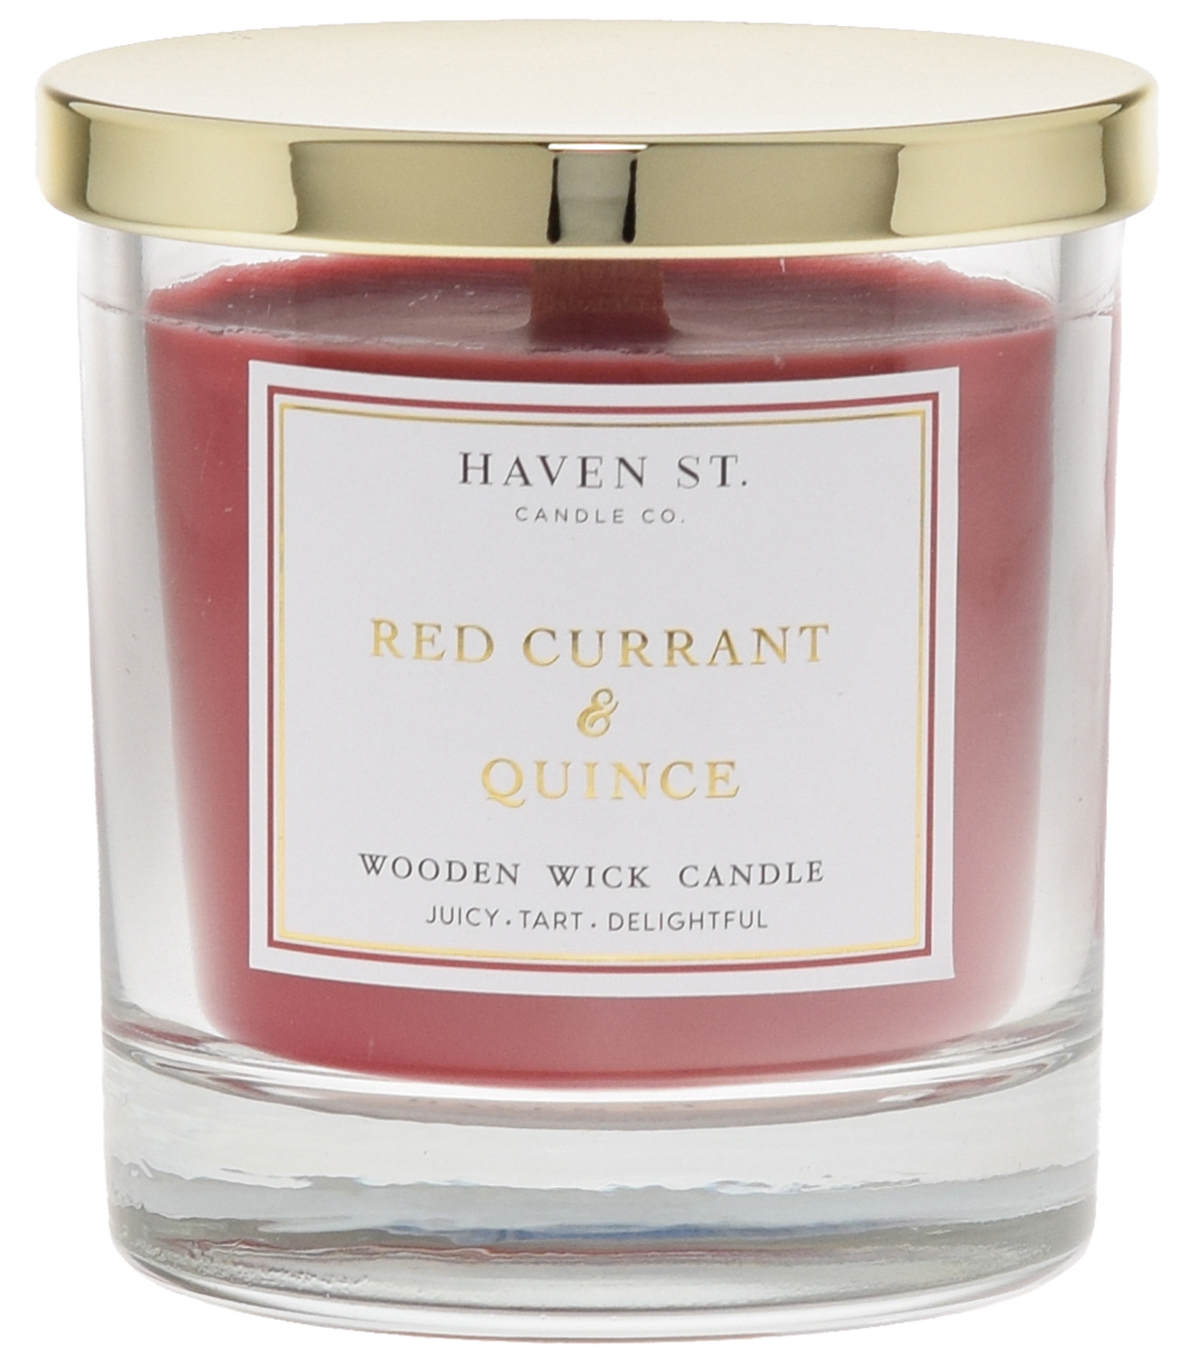 Haven St. 8oz Wooden Wick Jar Candle-Current/Quince